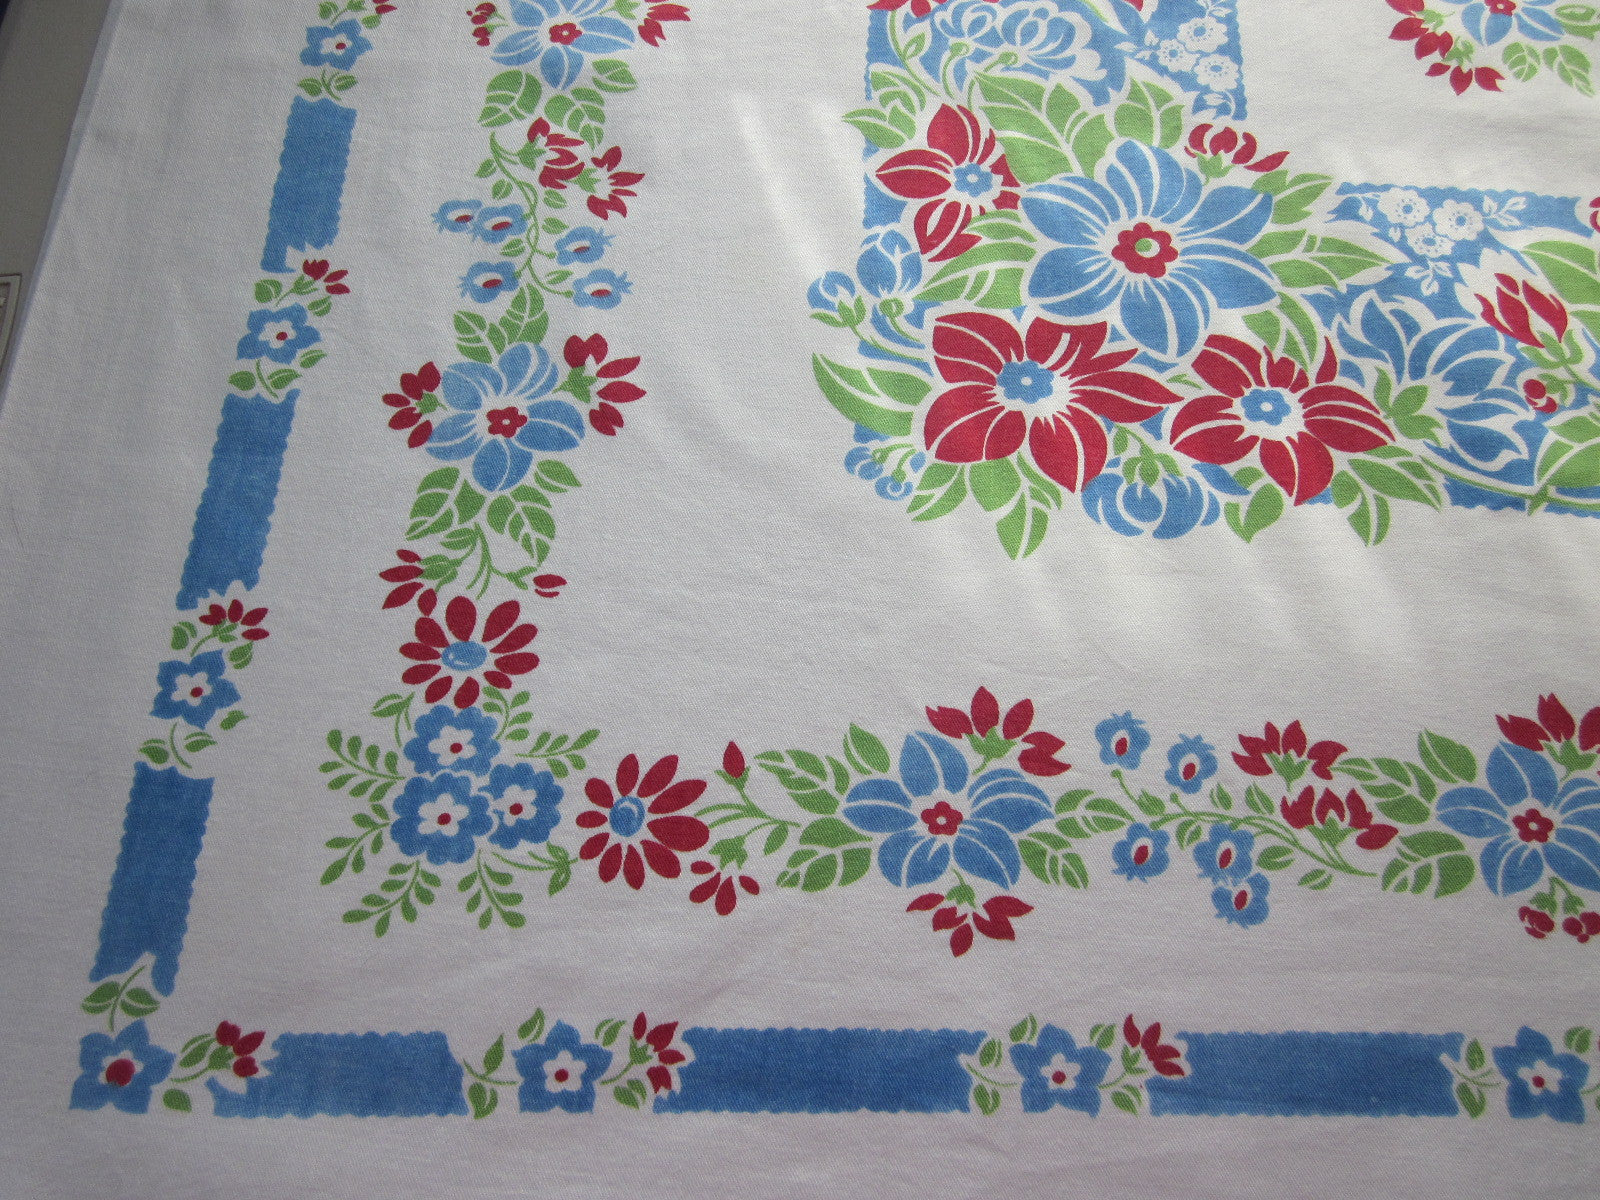 Red Blue Green Primary Floral Vintage Printed Tablecloth (52 X 46)